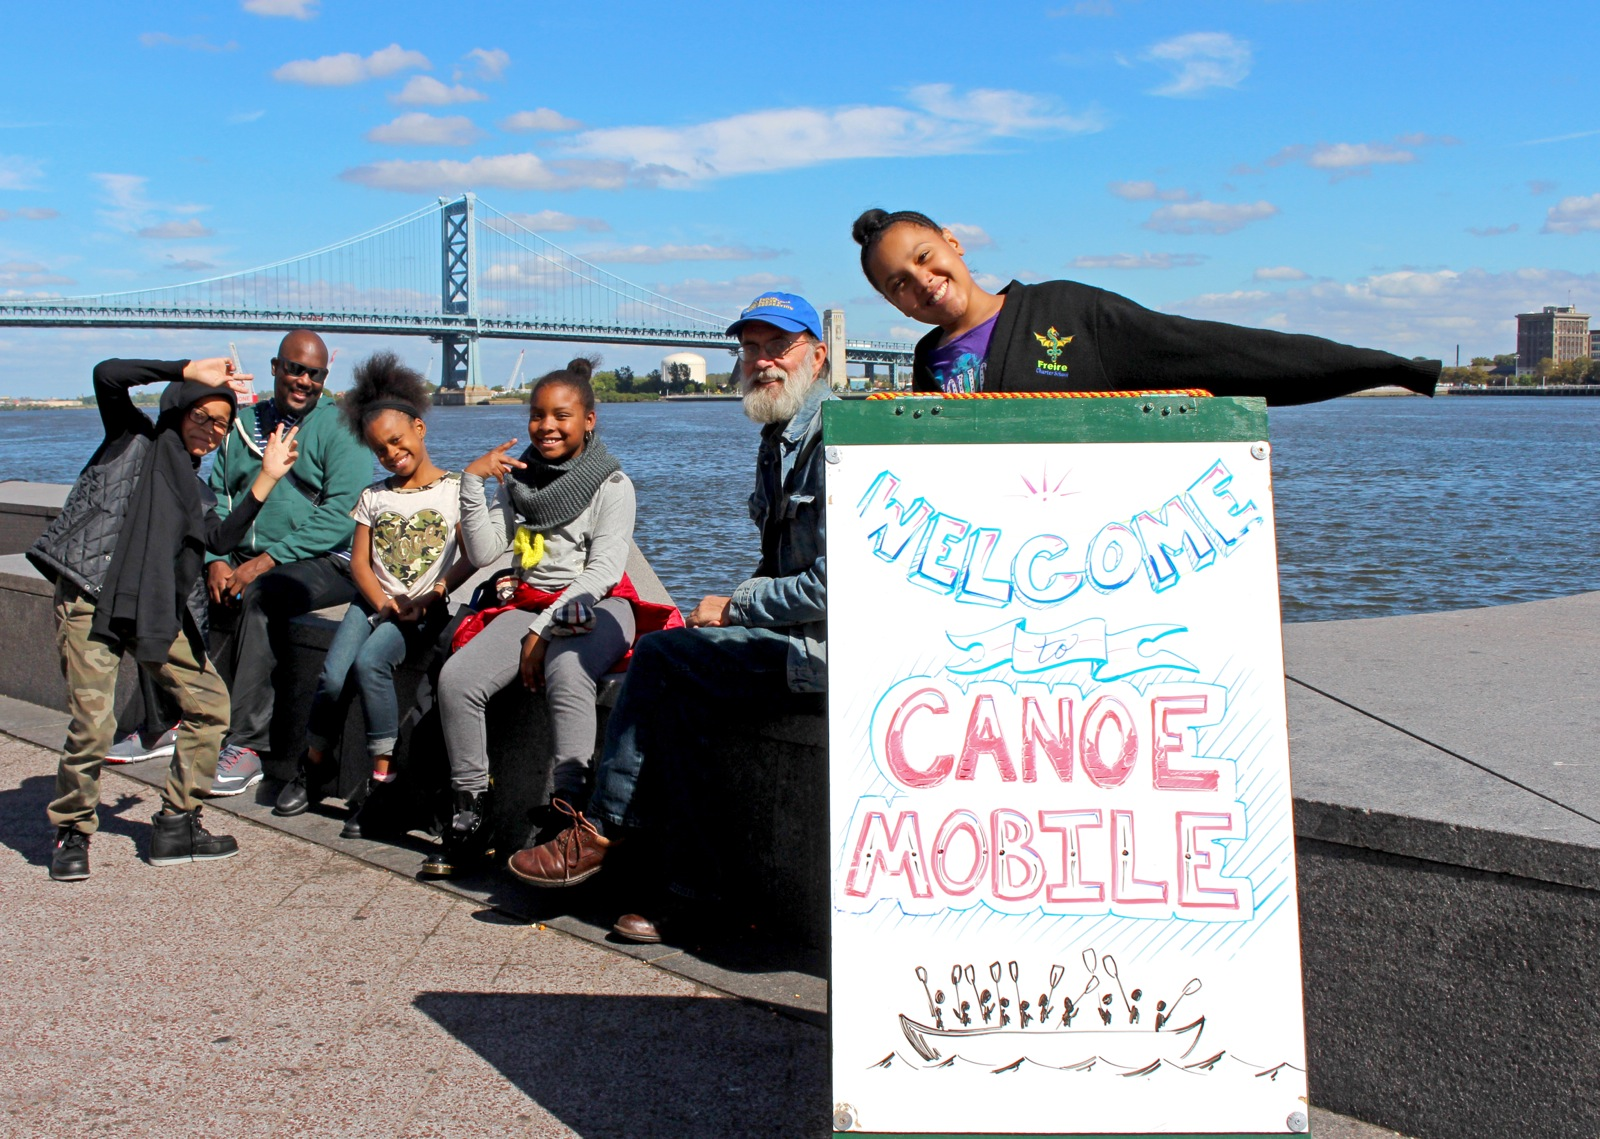 6 participants smile for the camera next to the Canoemobile sign by the river in Philadelphia